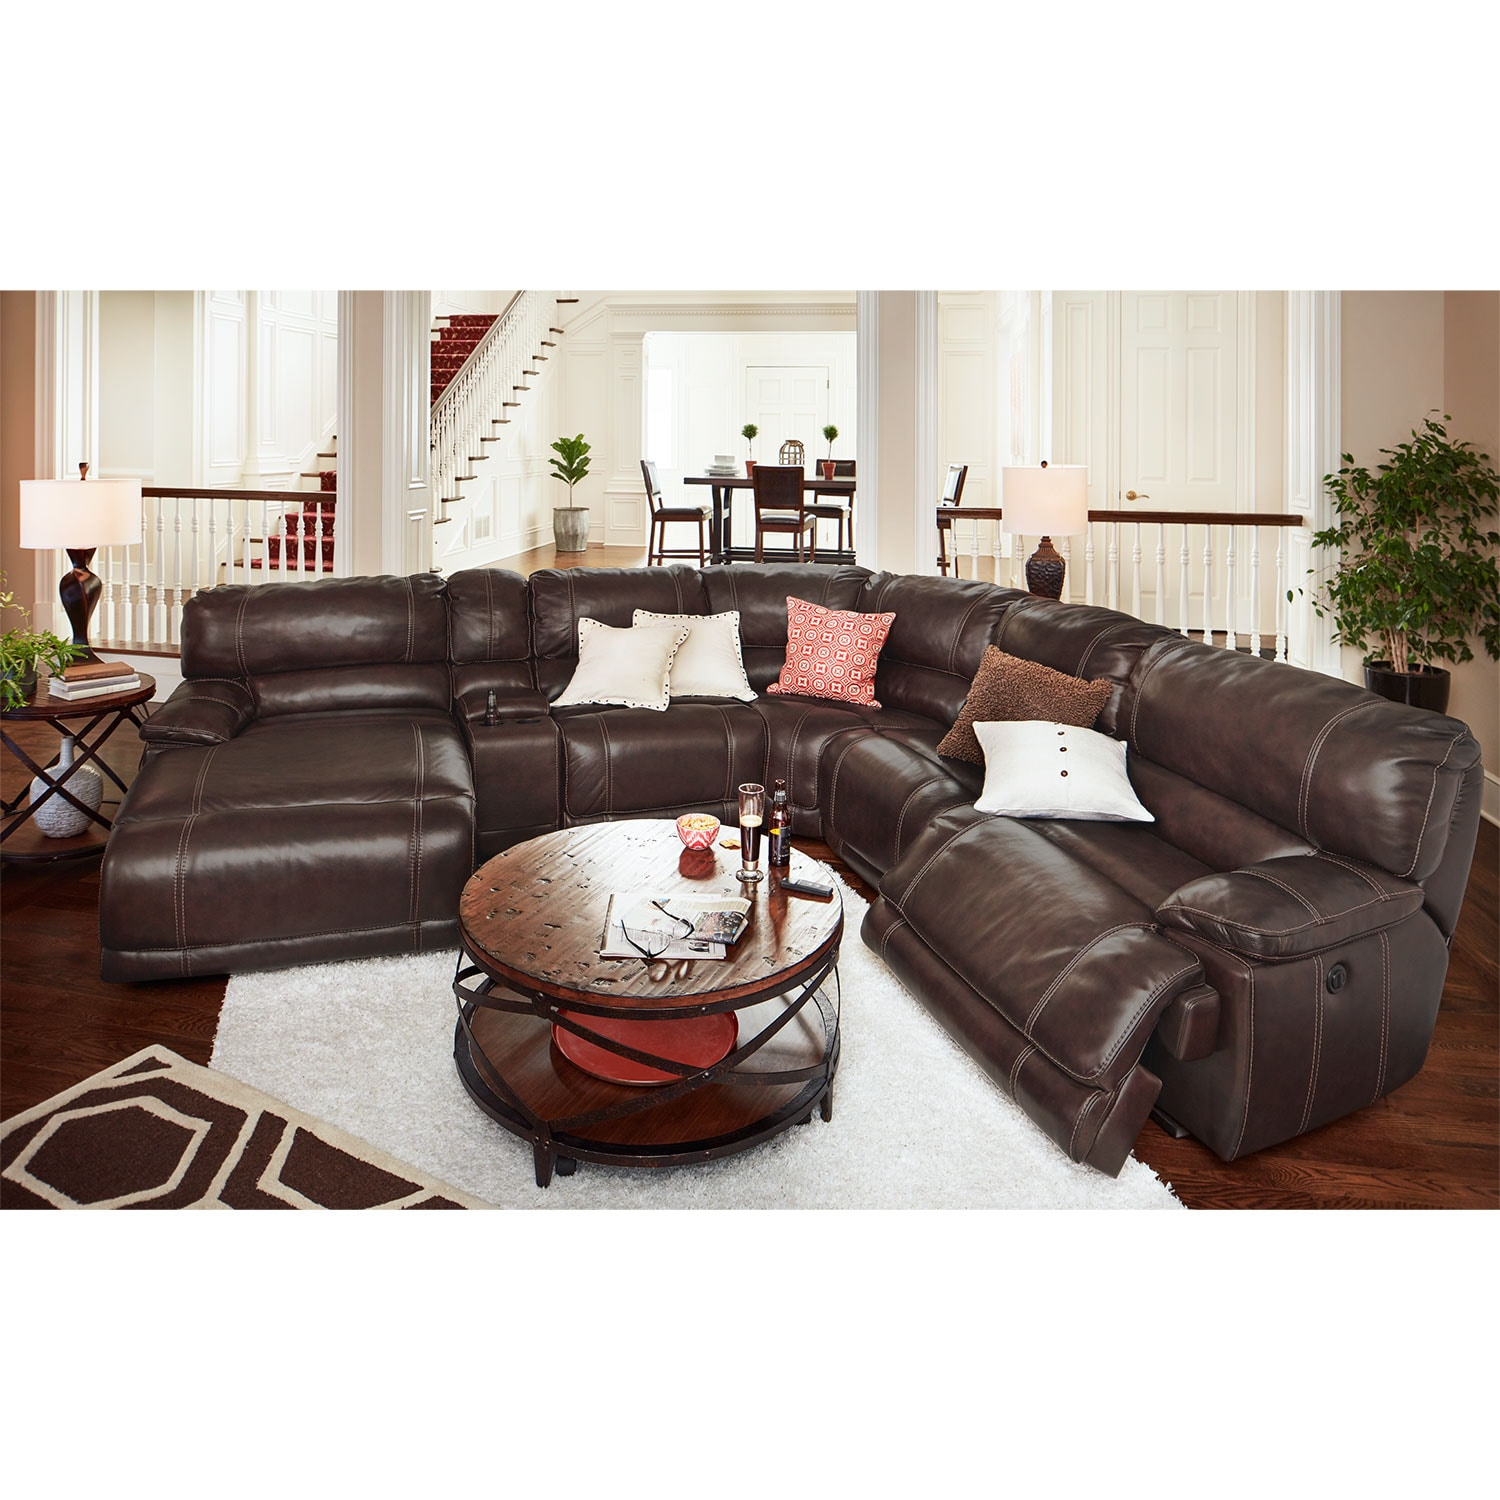 St. Malo 6-Piece Power Reclining Sectional with Left-Facing Chaise - Brown by One80  sc 1 st  American Signature Furniture : brown reclining sectional - Sectionals, Sofas & Couches